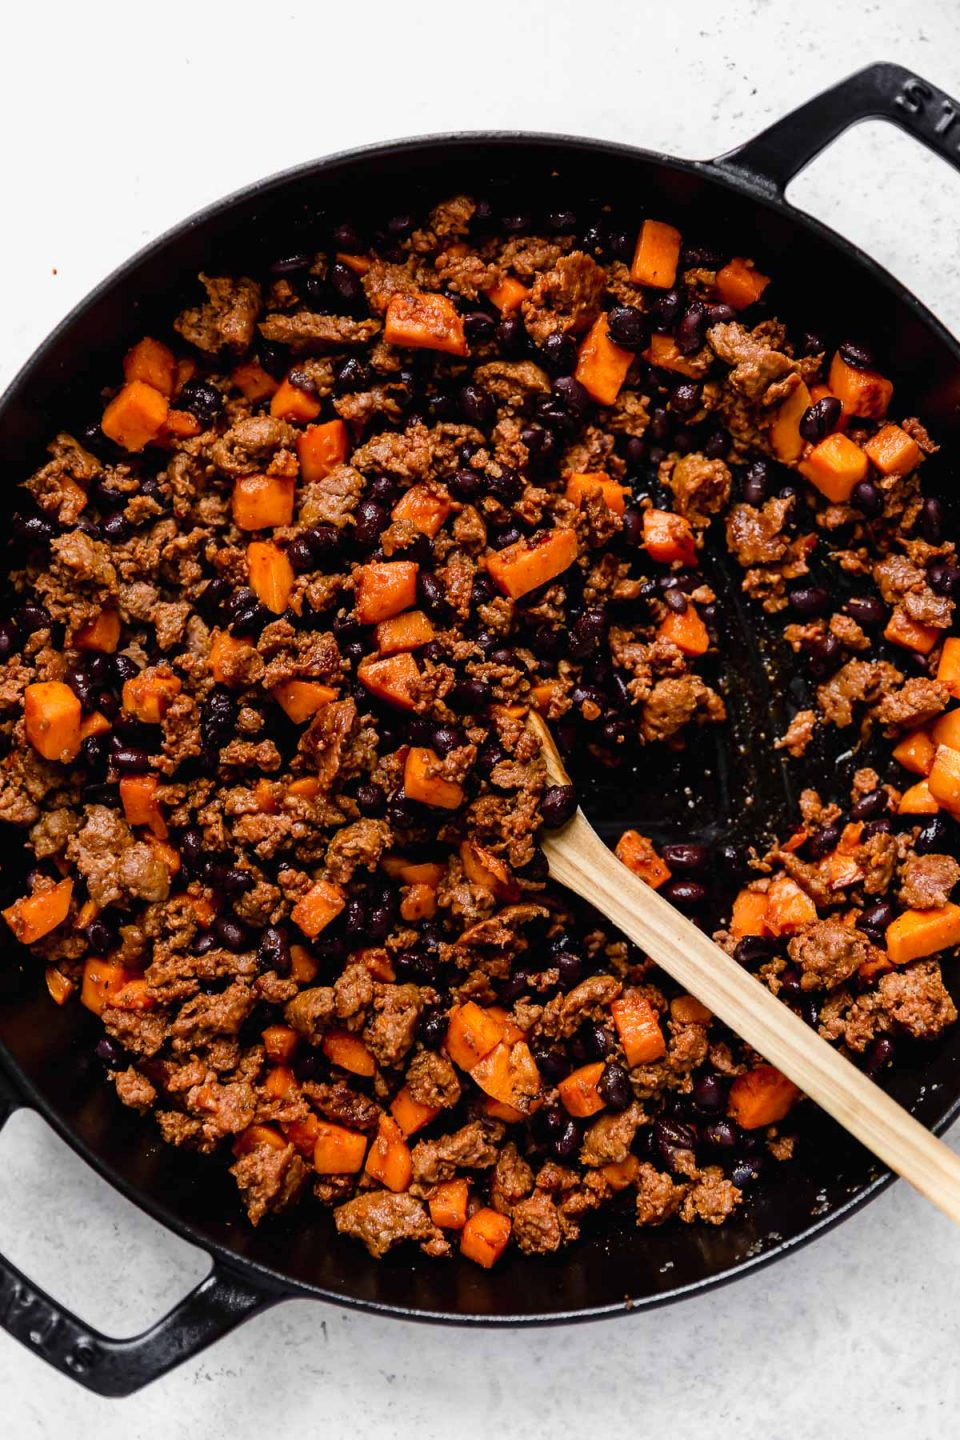 How to make chorizo and potato tacos - Step 2: Adding & mashing black beans into the sweet potato taco mixture.